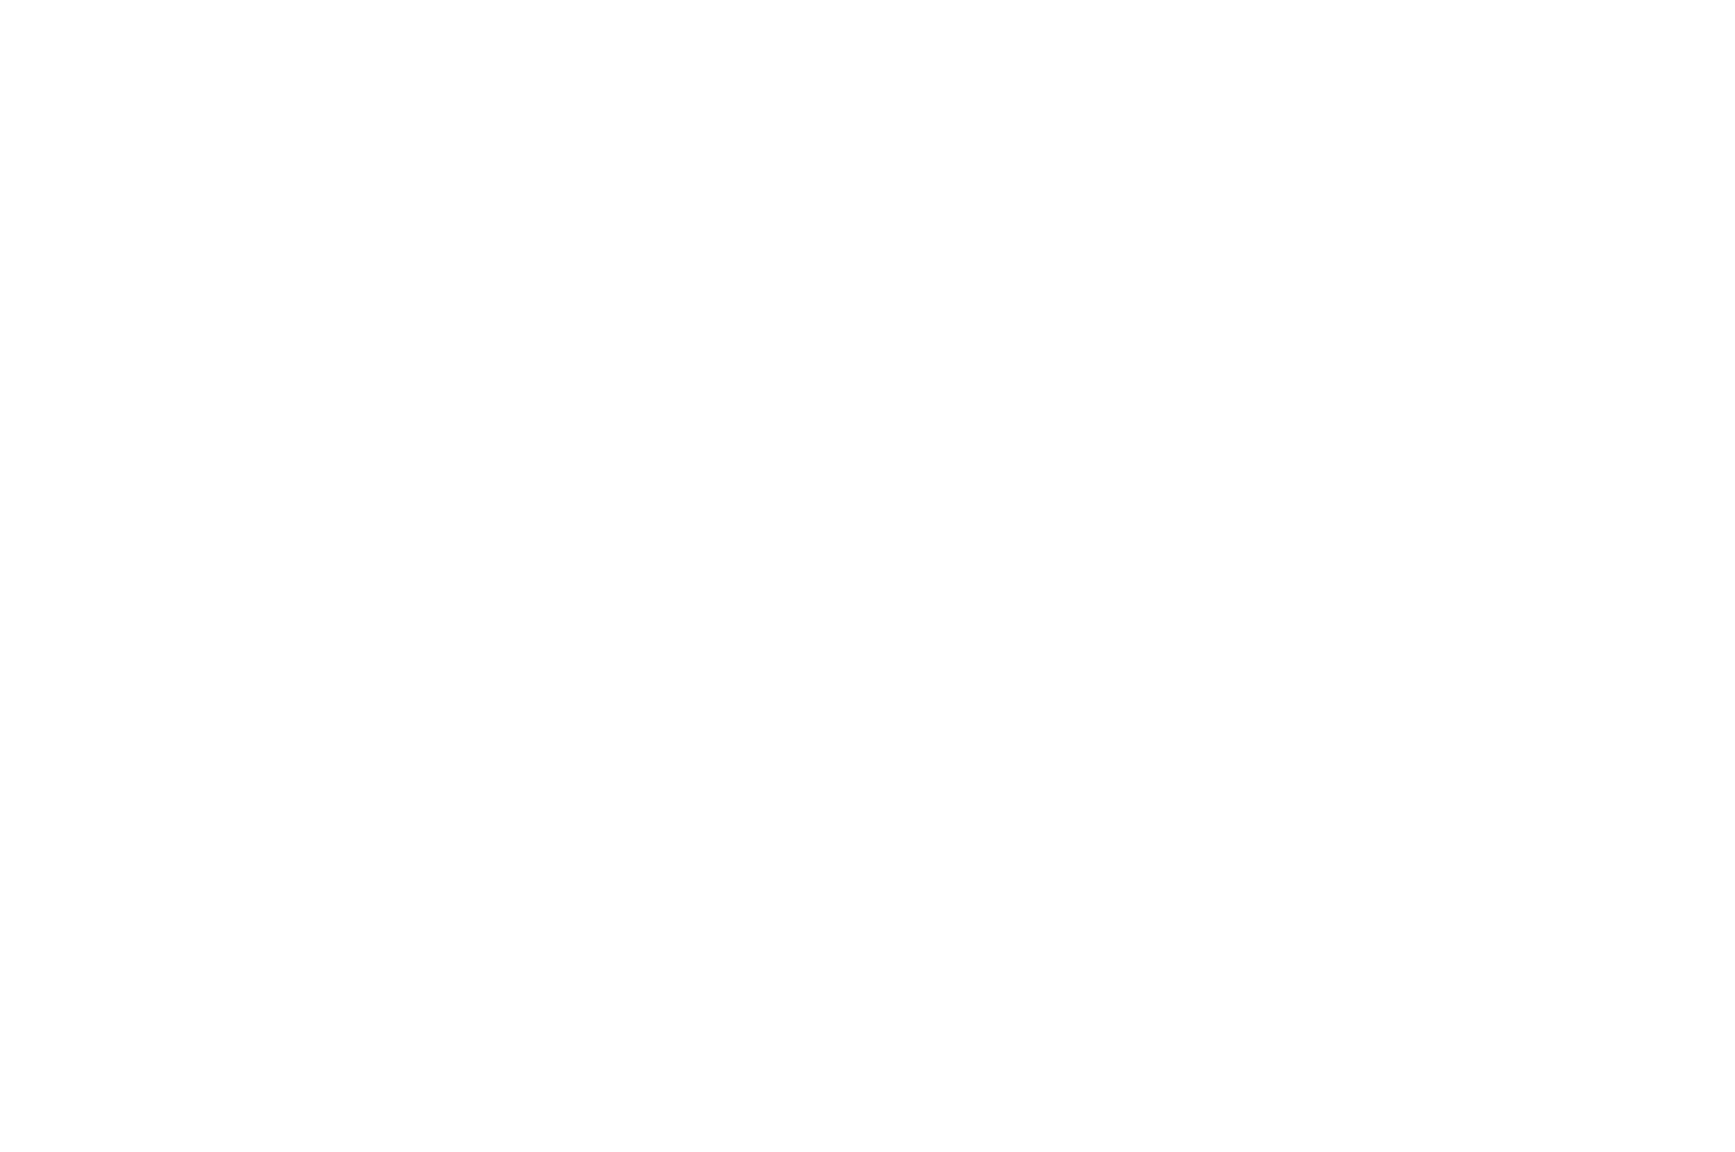 QUARTER-FINALIST - Creative World Awards Intl Screenplay Competition